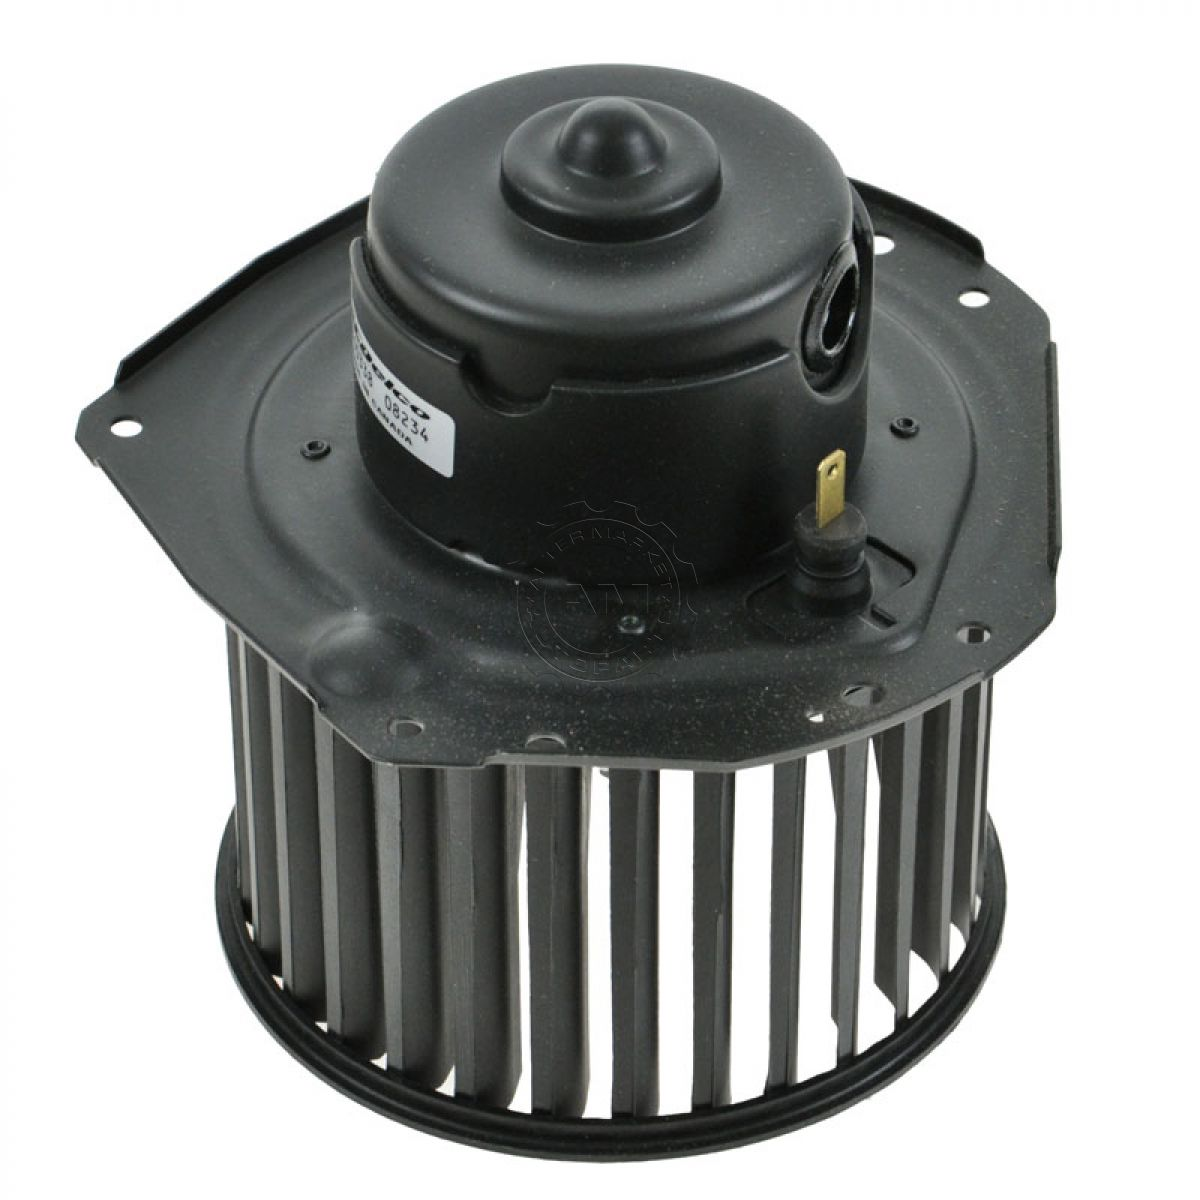 Ac Delco 15 80386 Heater Blower Motor W Wheel For Chevy